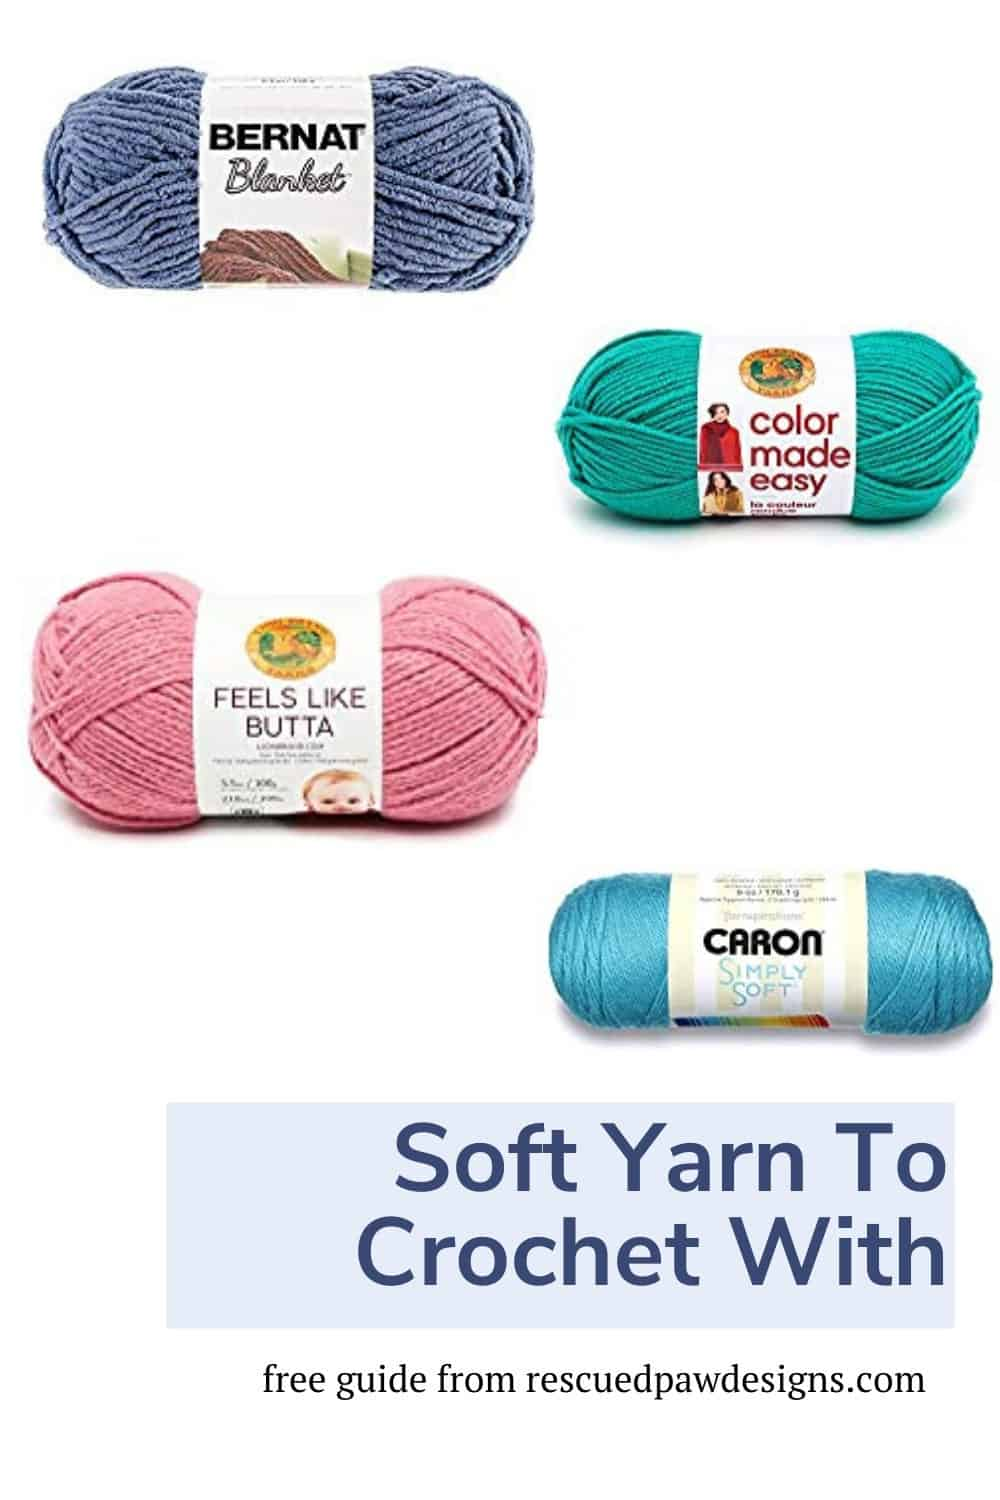 Soft Yarn to Crochet With